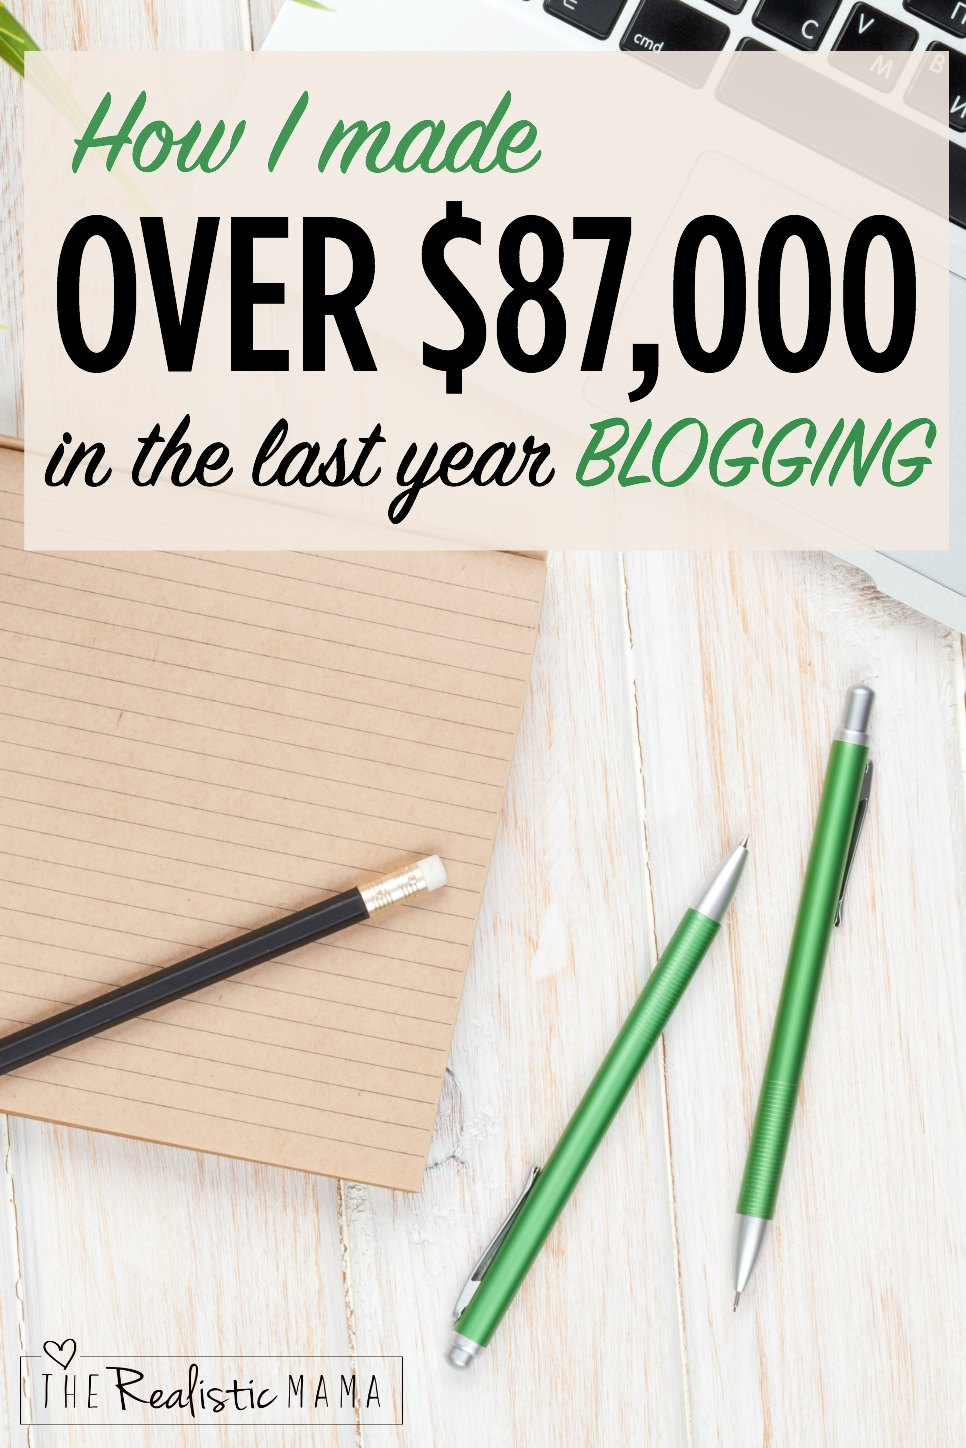 How I made over $87,000 in the last 12 months blogging